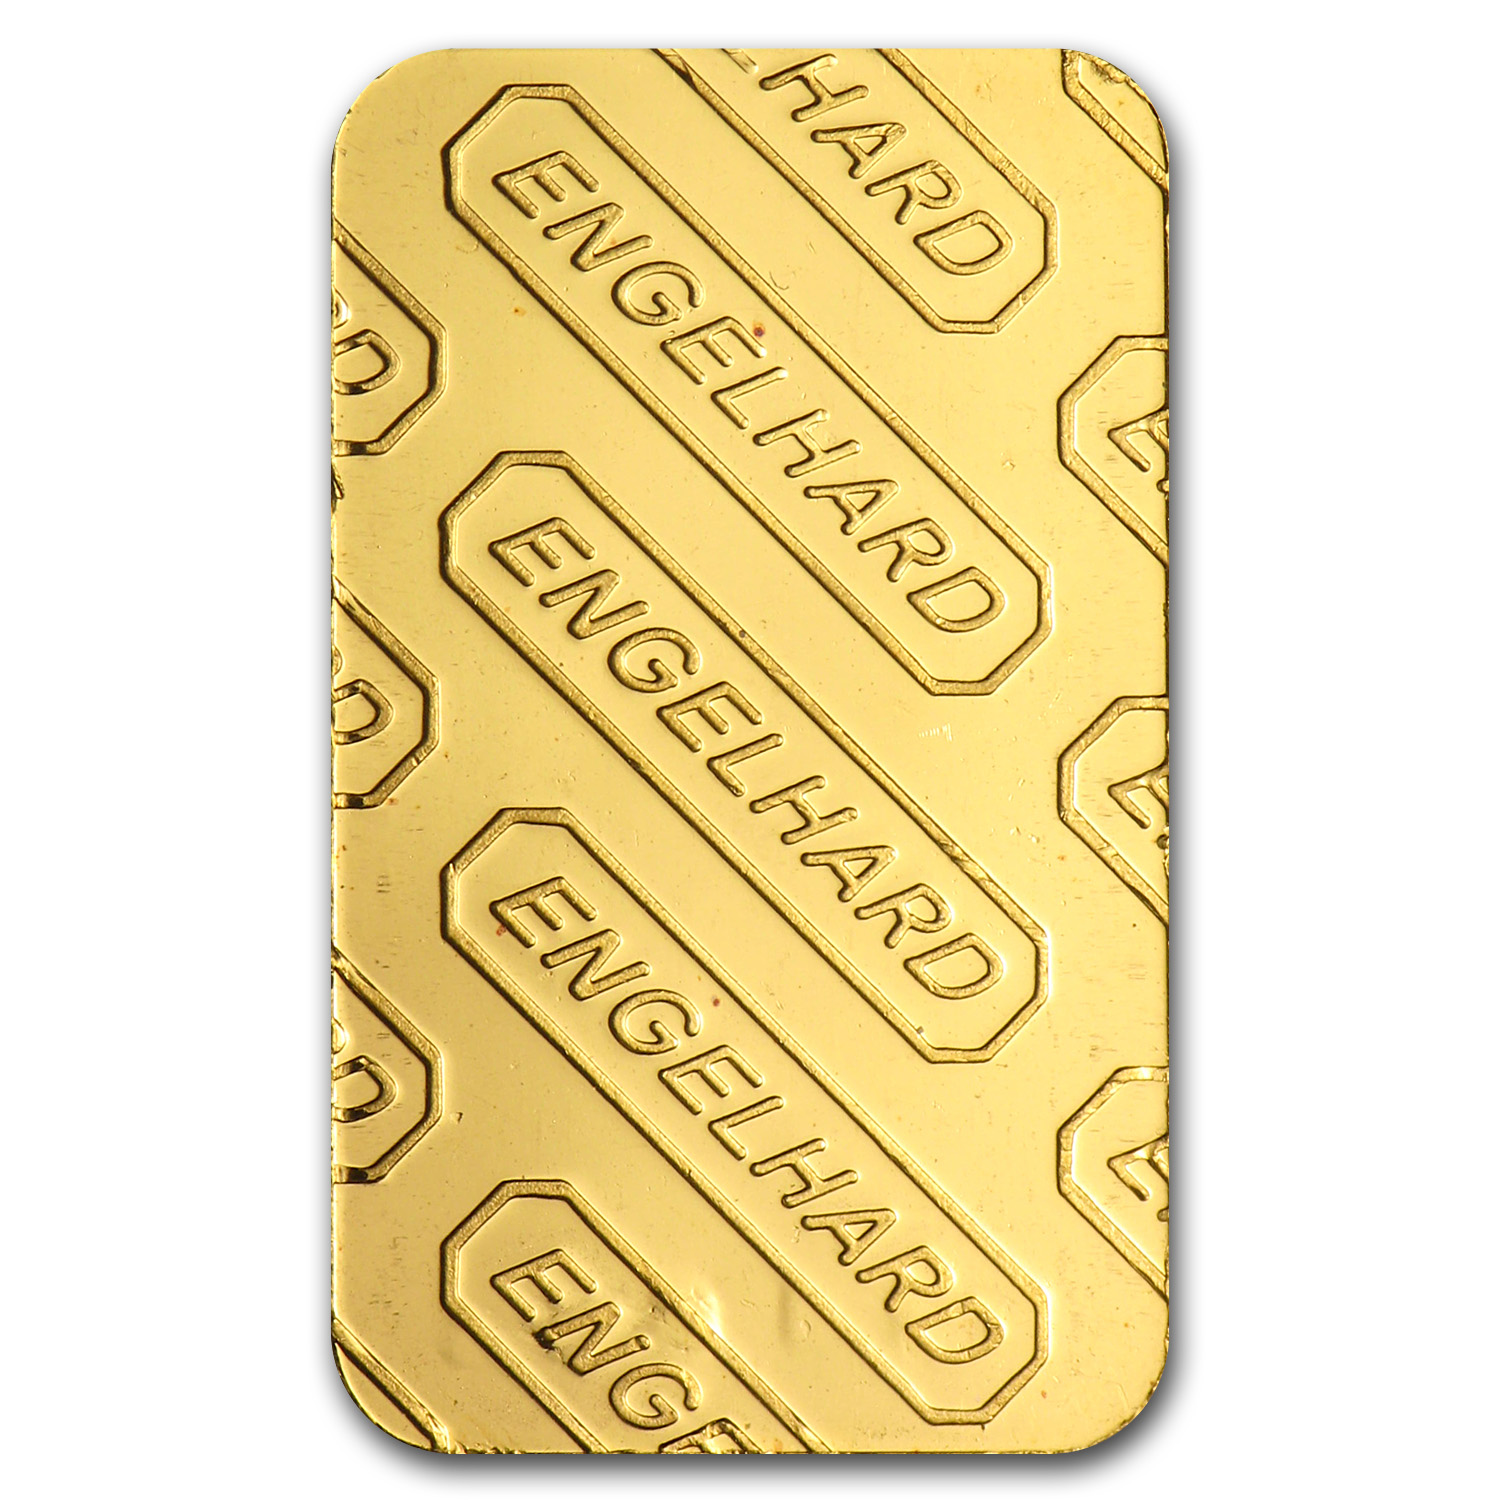 5 gram Gold Bars - Engelhard